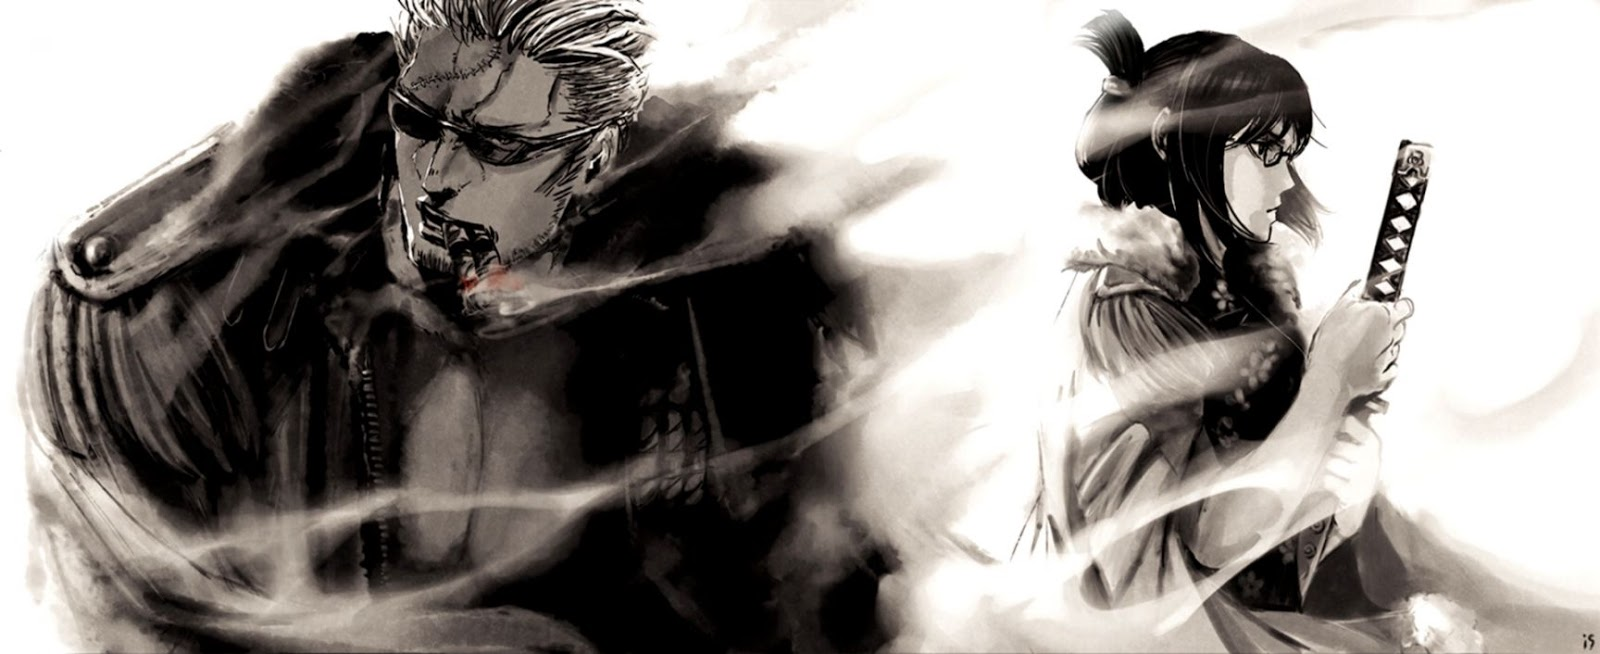 Smoker One Piece Anime Background Wallpapers 1600x654